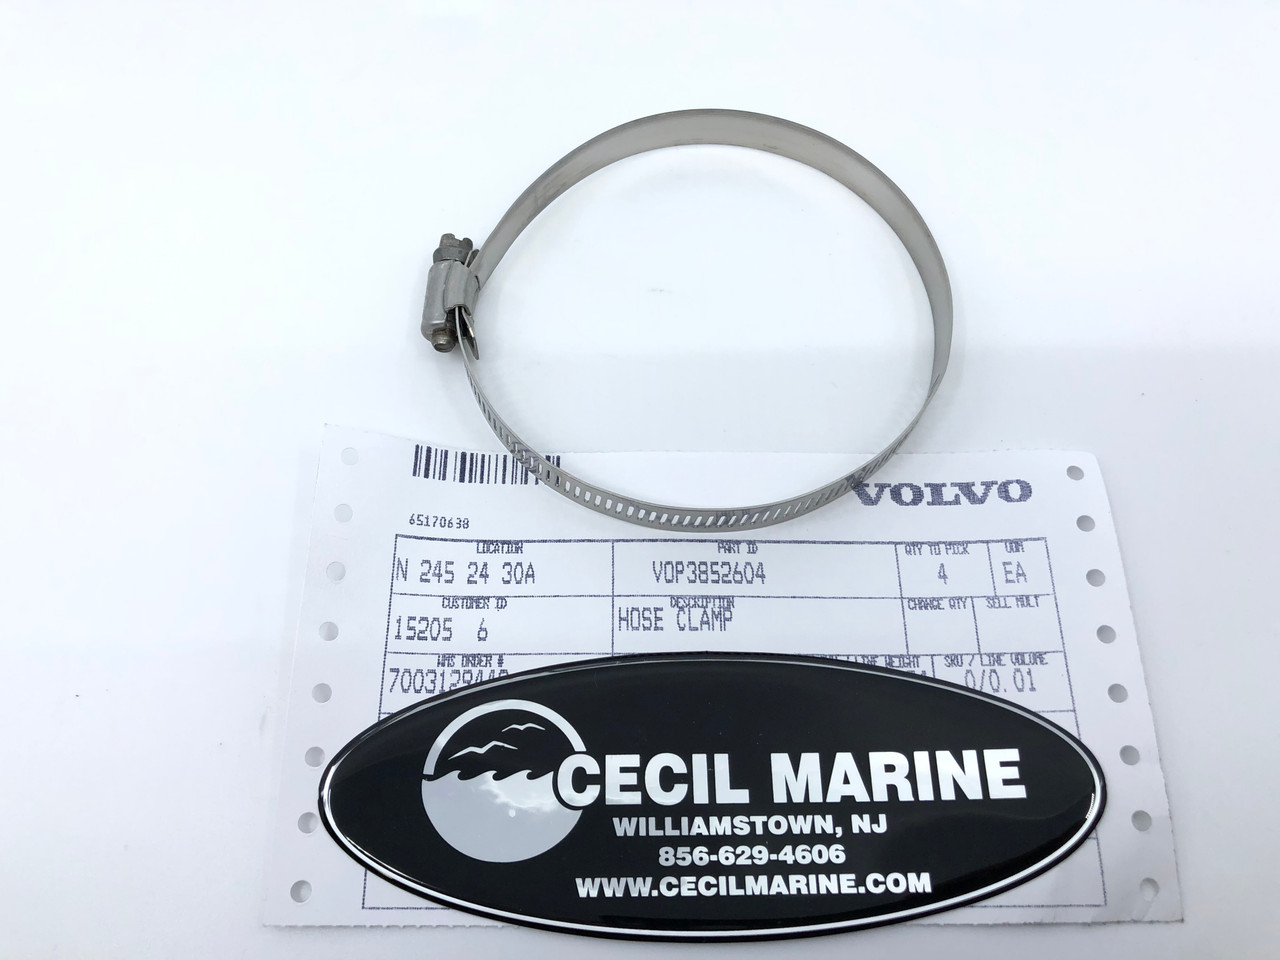 $19.99* HOSE CLAMP 3852604 Special Order 10 TO 14 Day Delivery